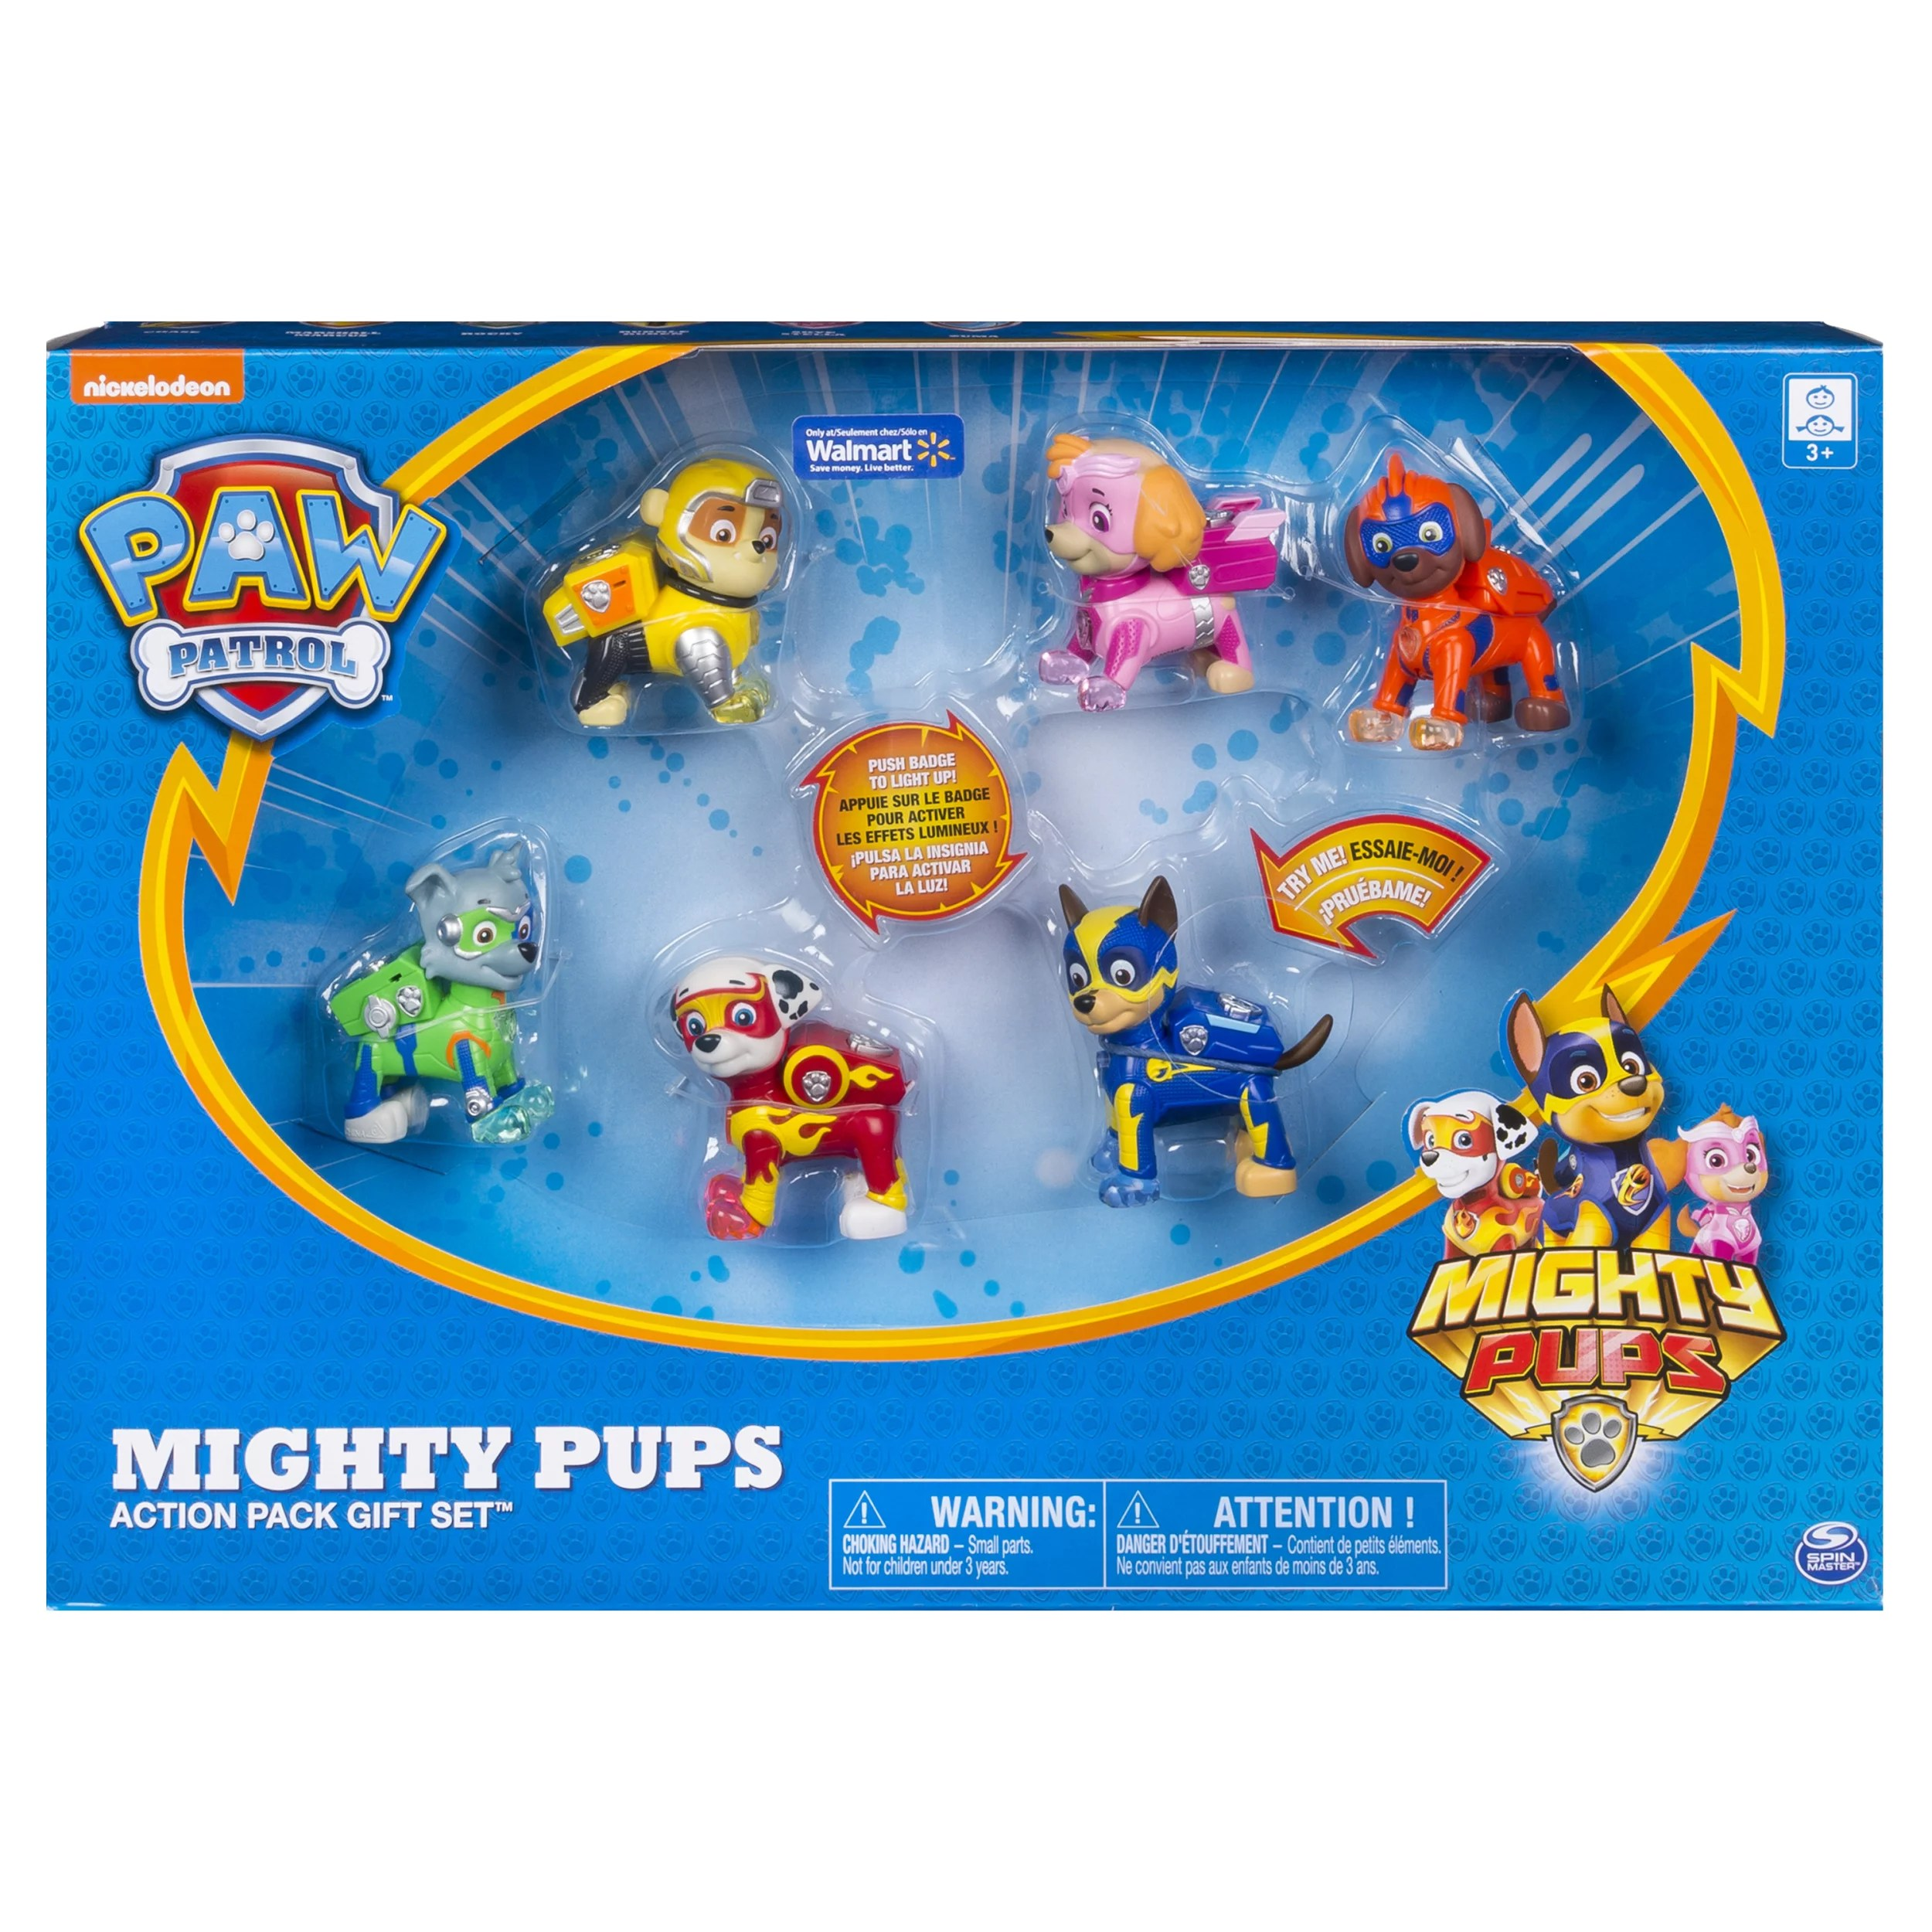 Paw Patrol Mighty Pups 6 Pack Gift Set Paw Patrol Figures With Light Up Badges And Paws Wal Mart Exclusive For Ages 3 And Up Walmart Com Walmart Com